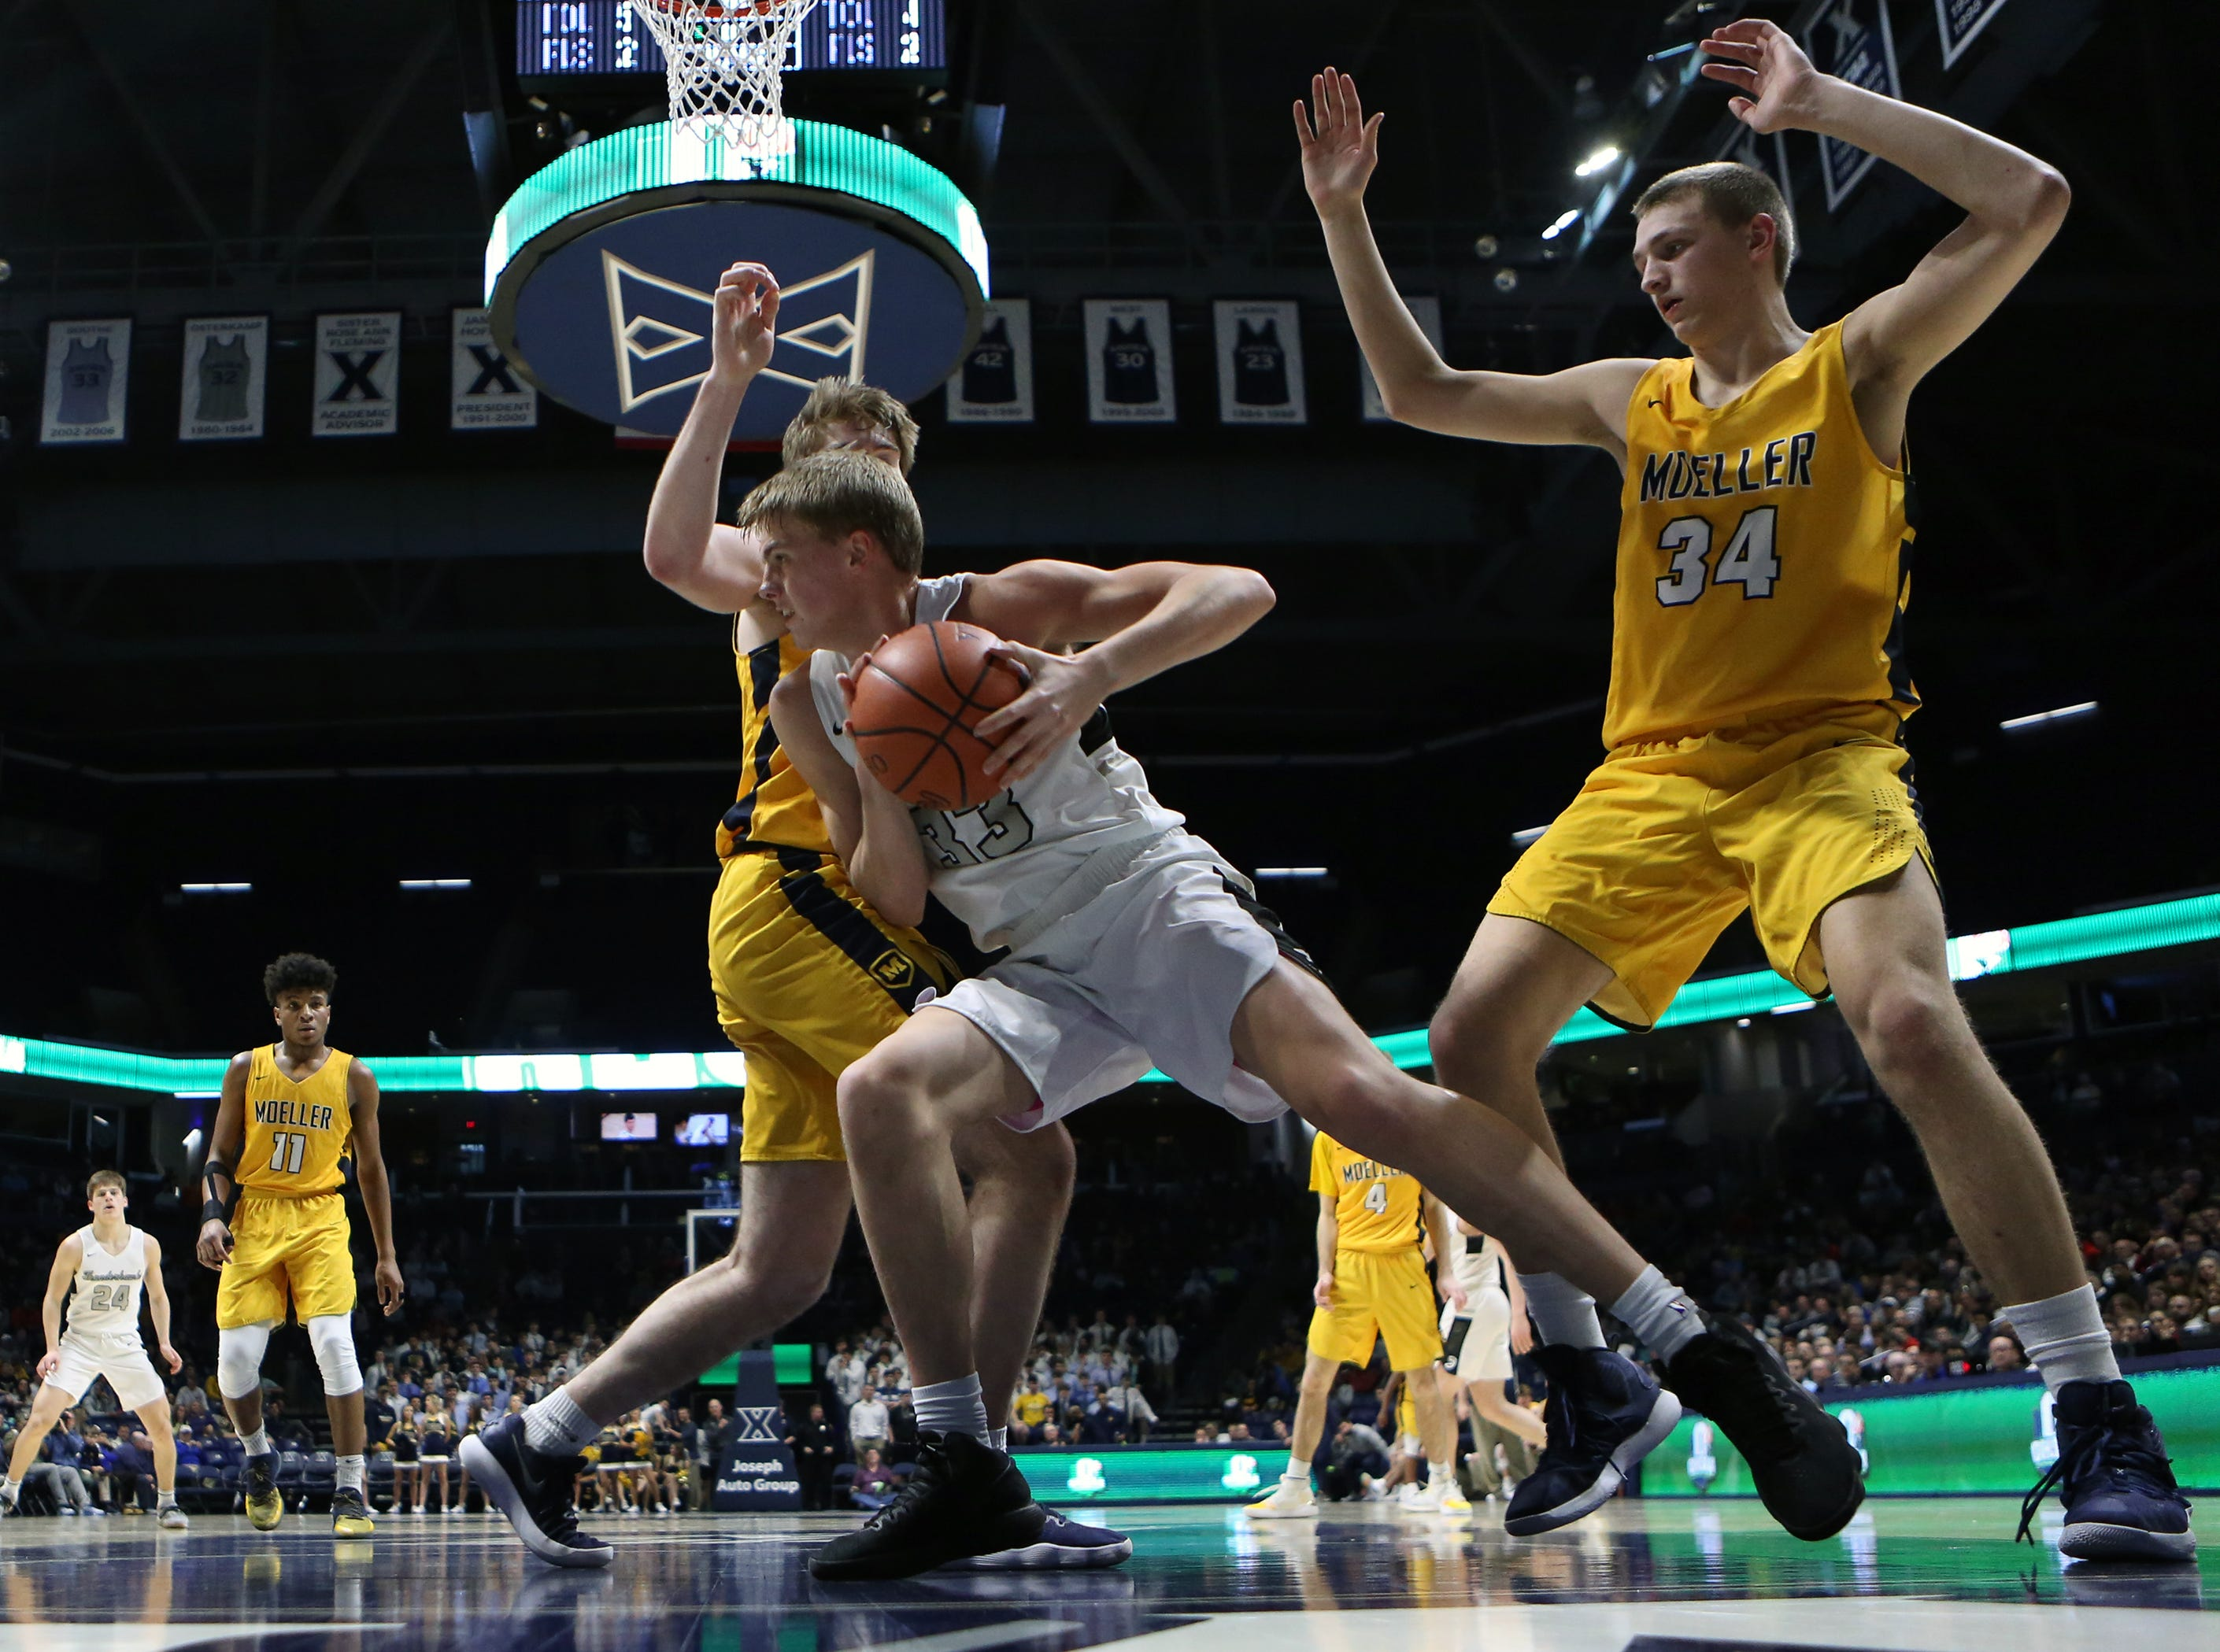 Lakota East forward Grant Spicer looks to score from the paint in the second half of the boys regional semifinal March 13, 2019, at Xavier University's Cintas Center. Moeller defeated Lakota East 47-33.